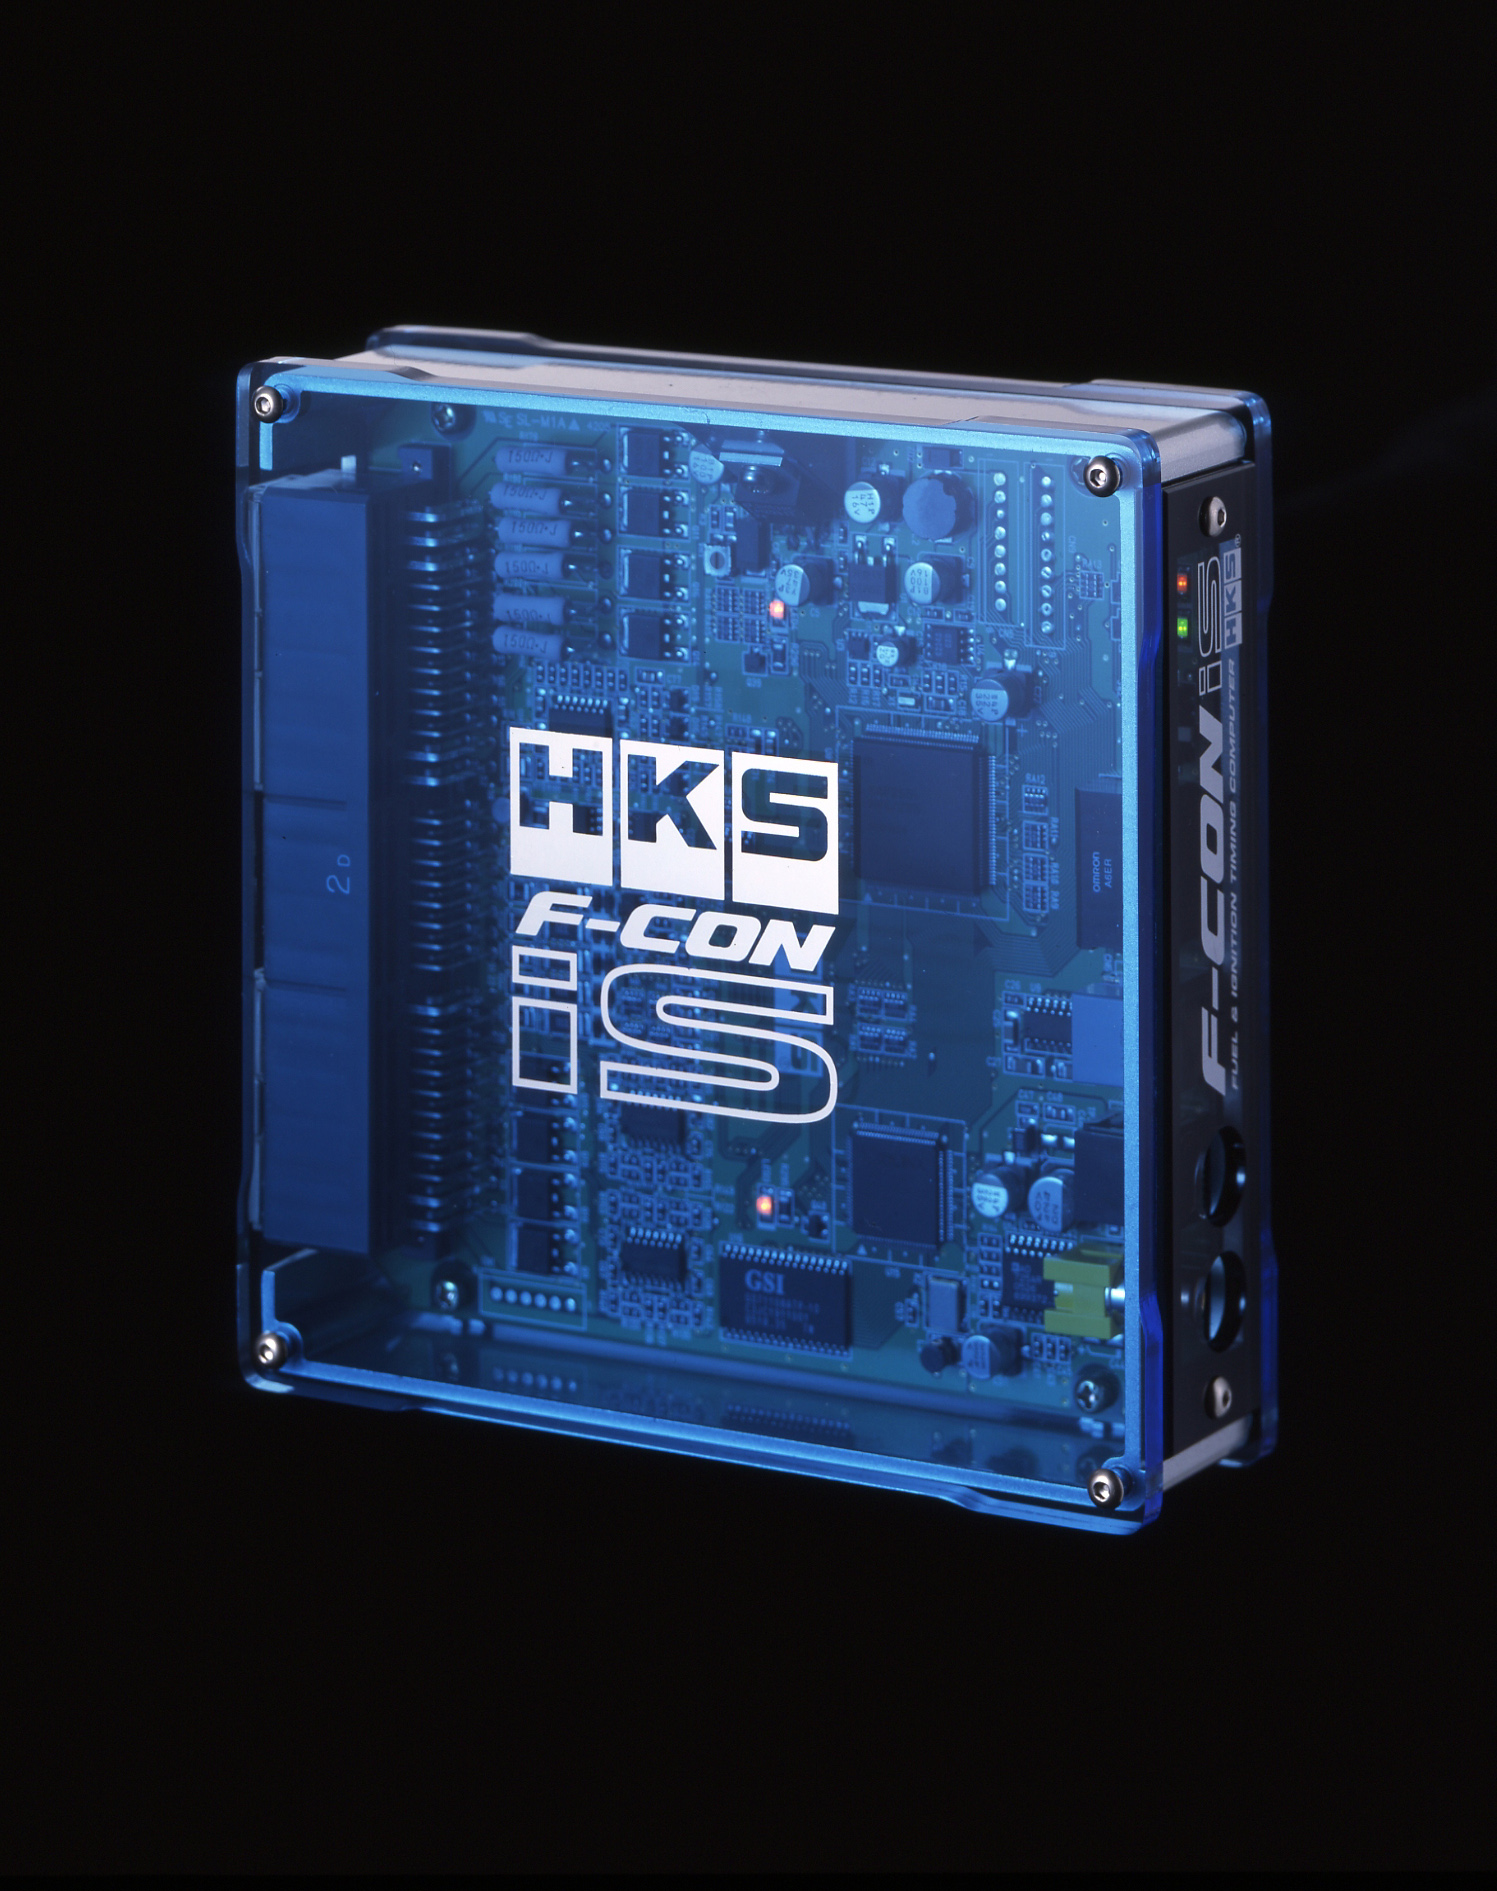 HKS F-Con iS now available for Honda CR-Z